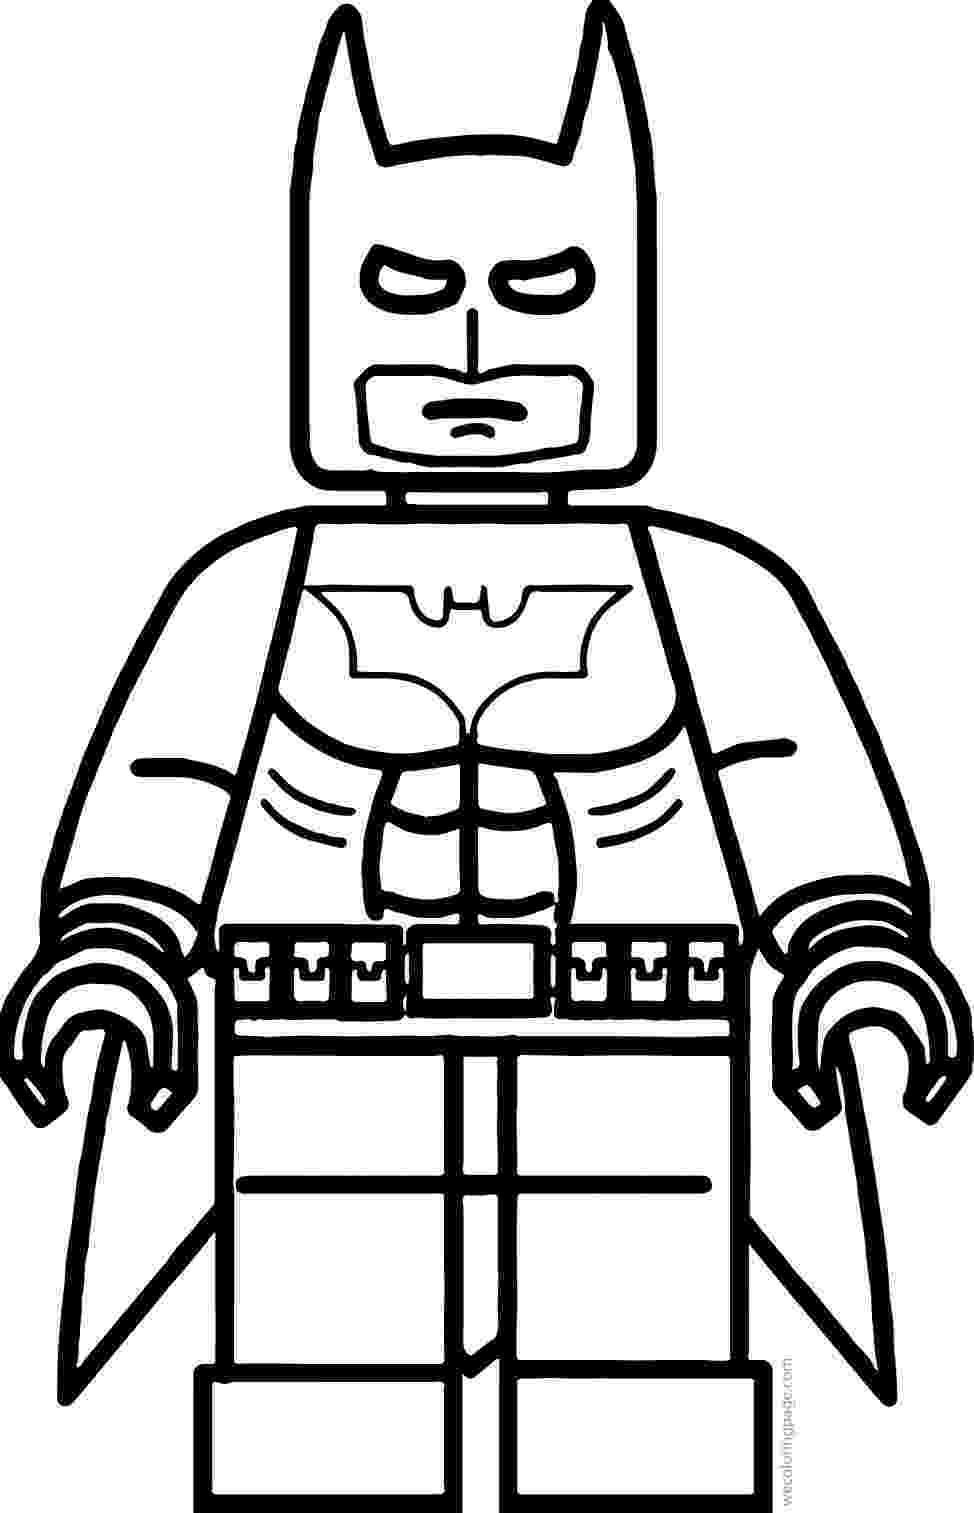 free batman printables batman and robin coloring pages to download and print for free batman printables free 1 1